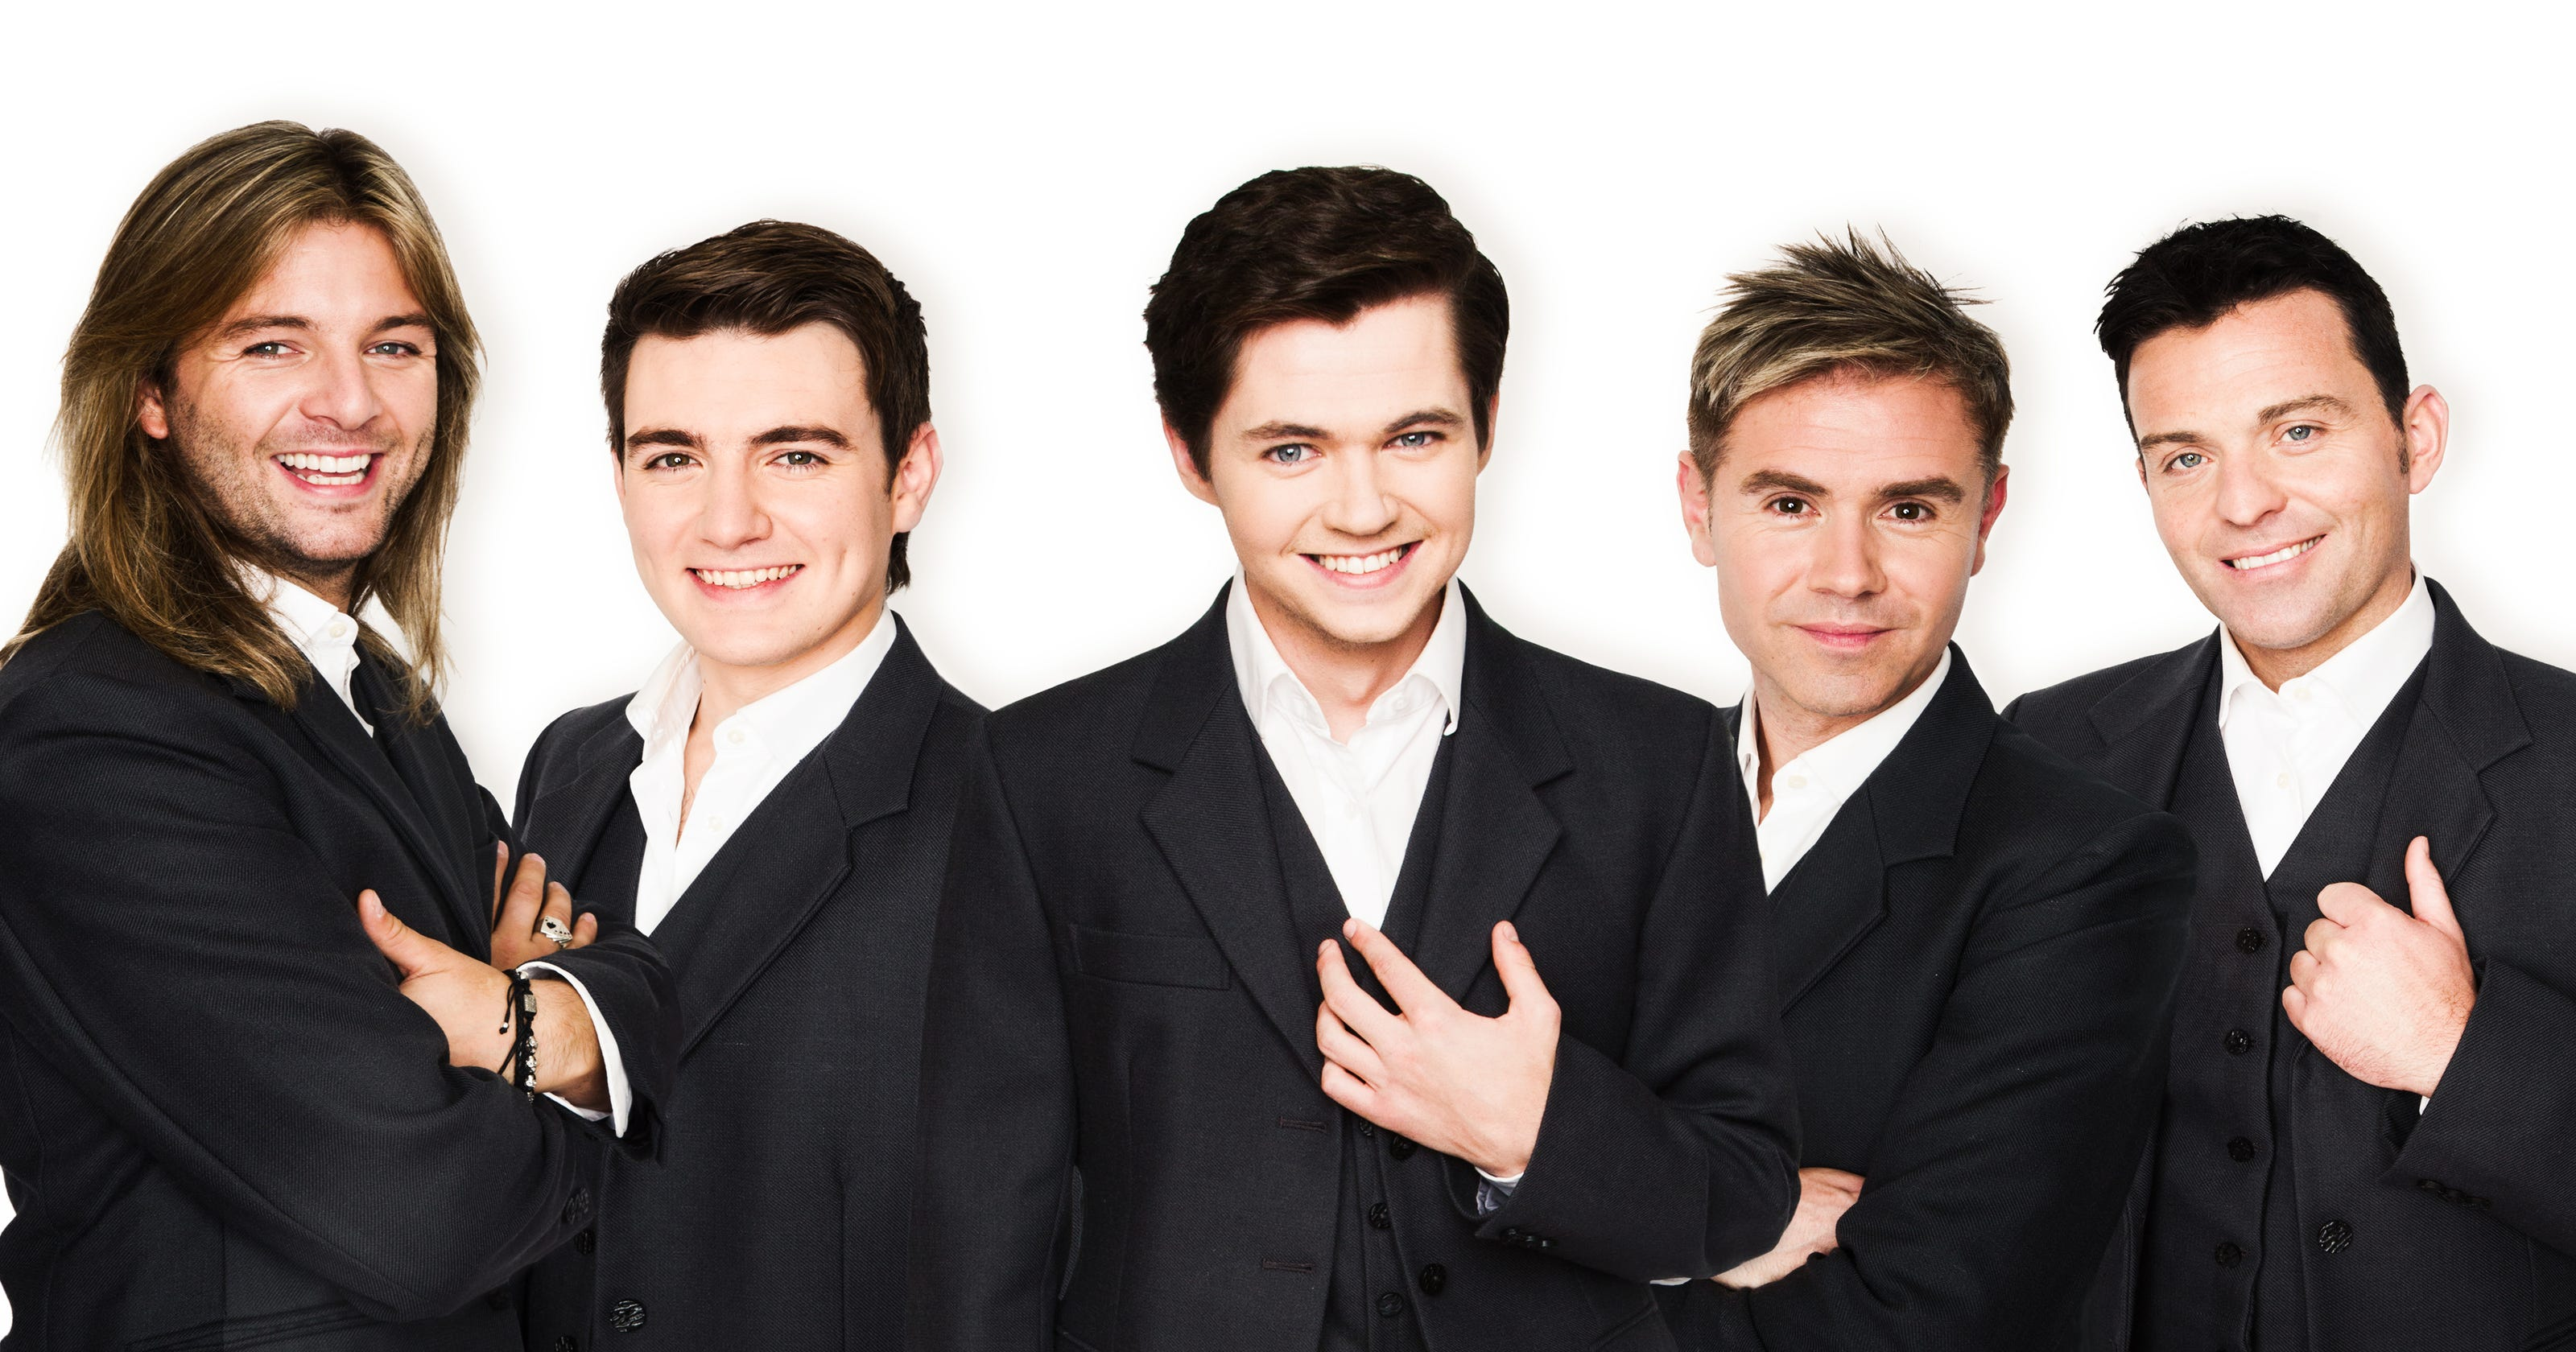 Celtic thunder to perform at civic center on oct 1 m4hsunfo